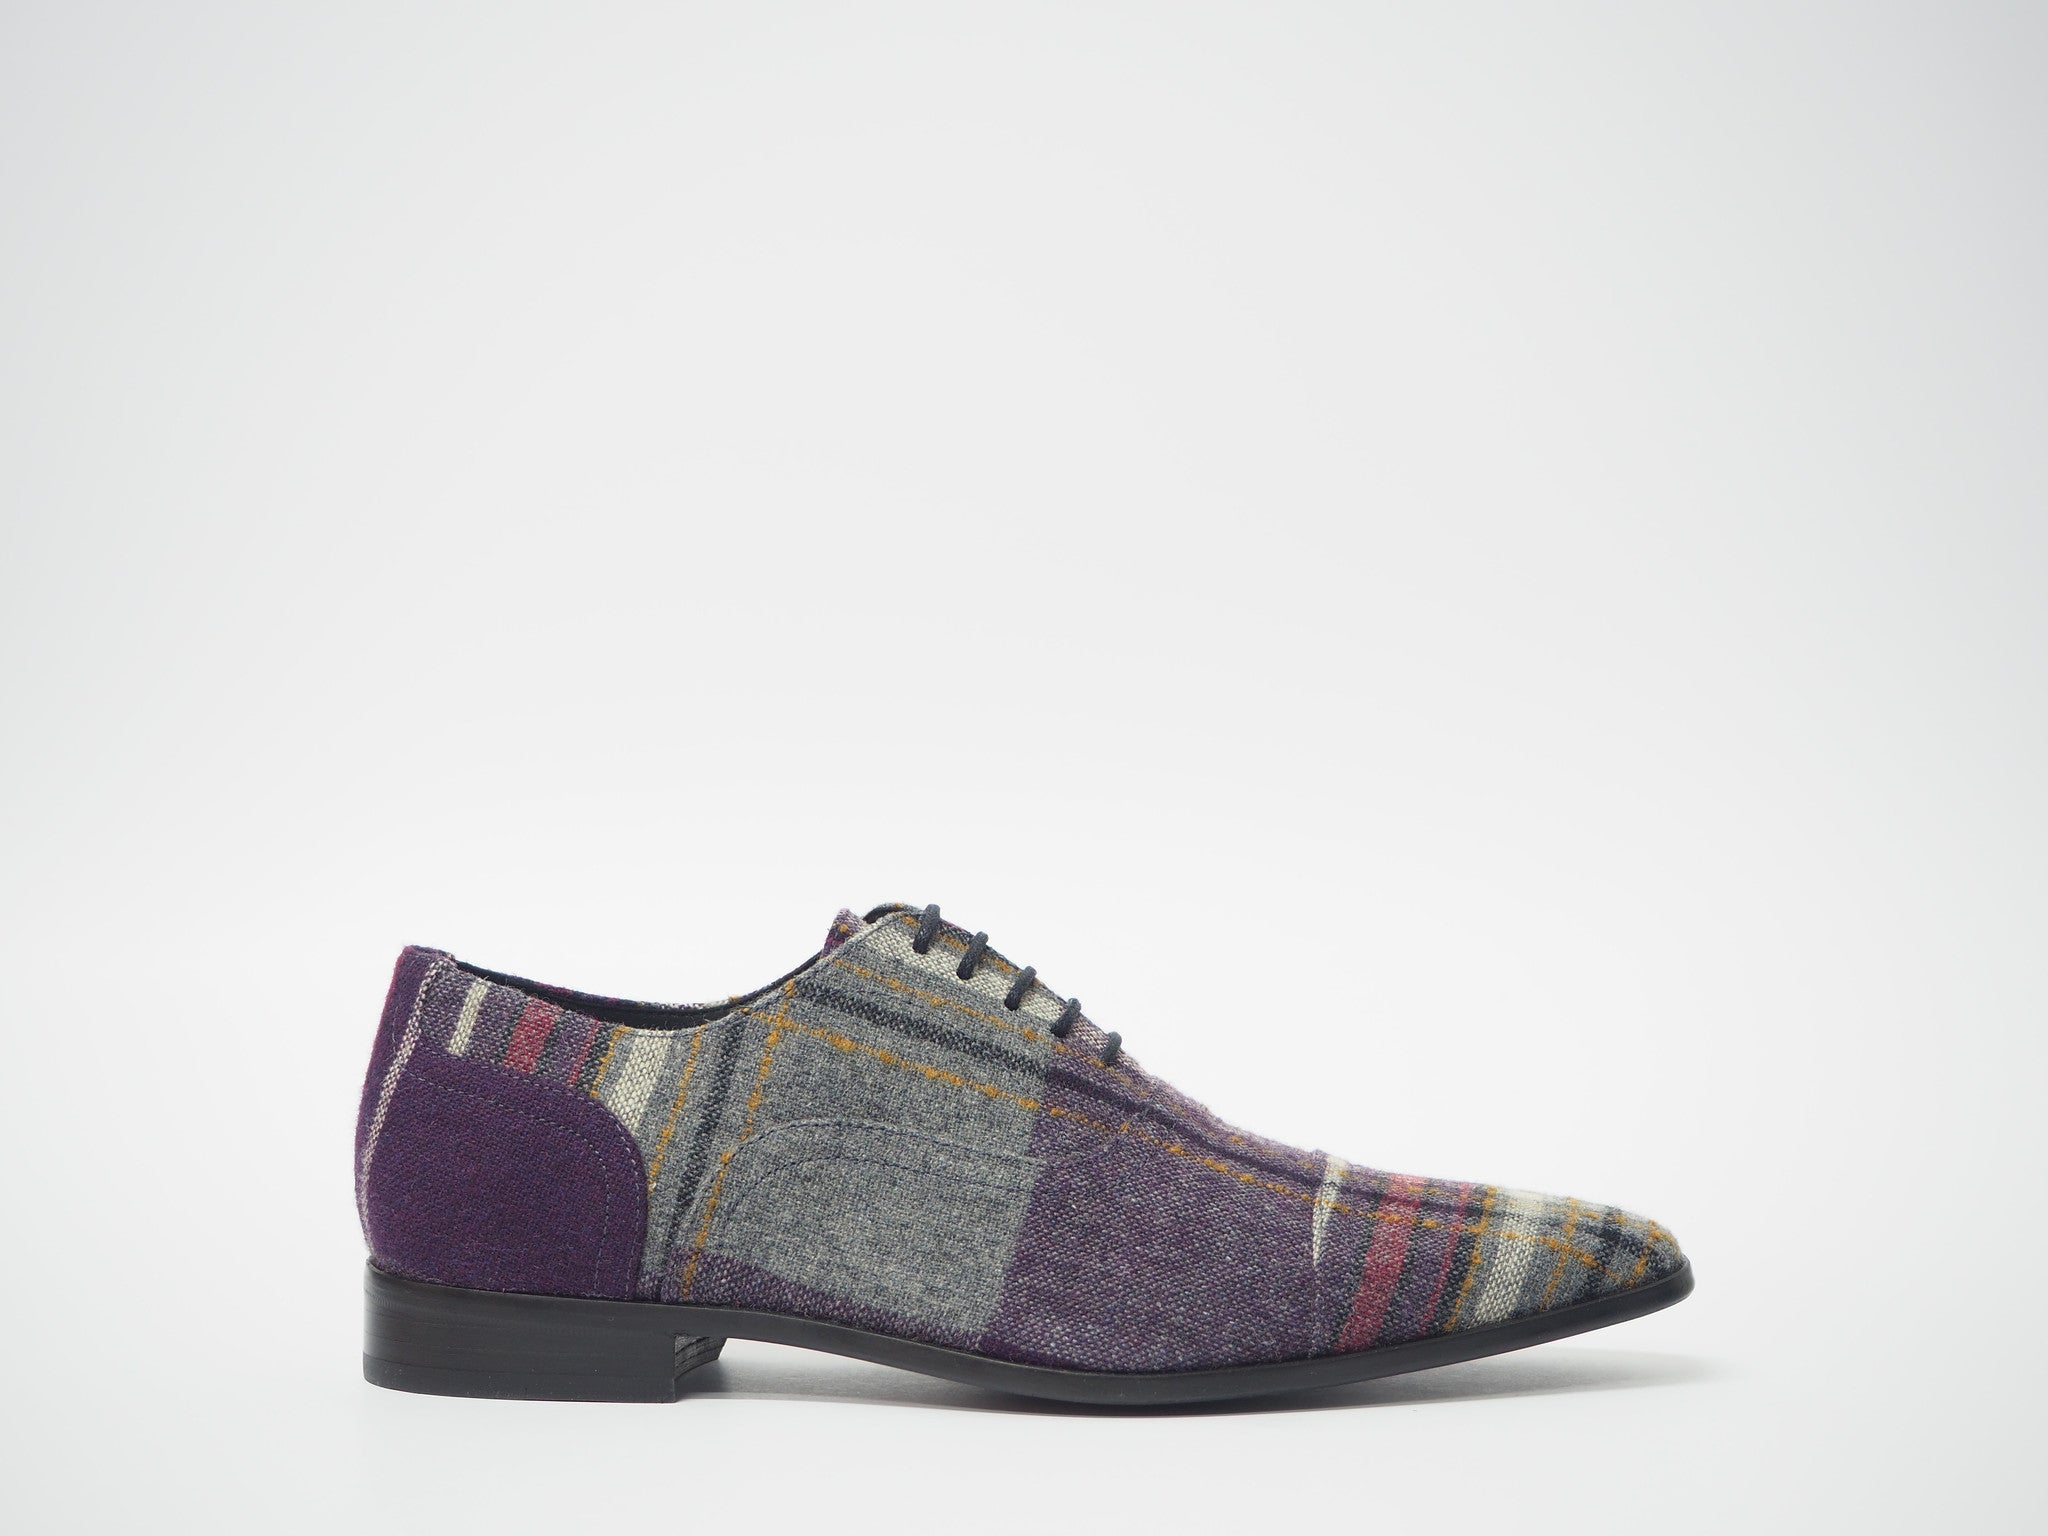 Size 42 - Purple & Gray Tartan Oxford + Belt